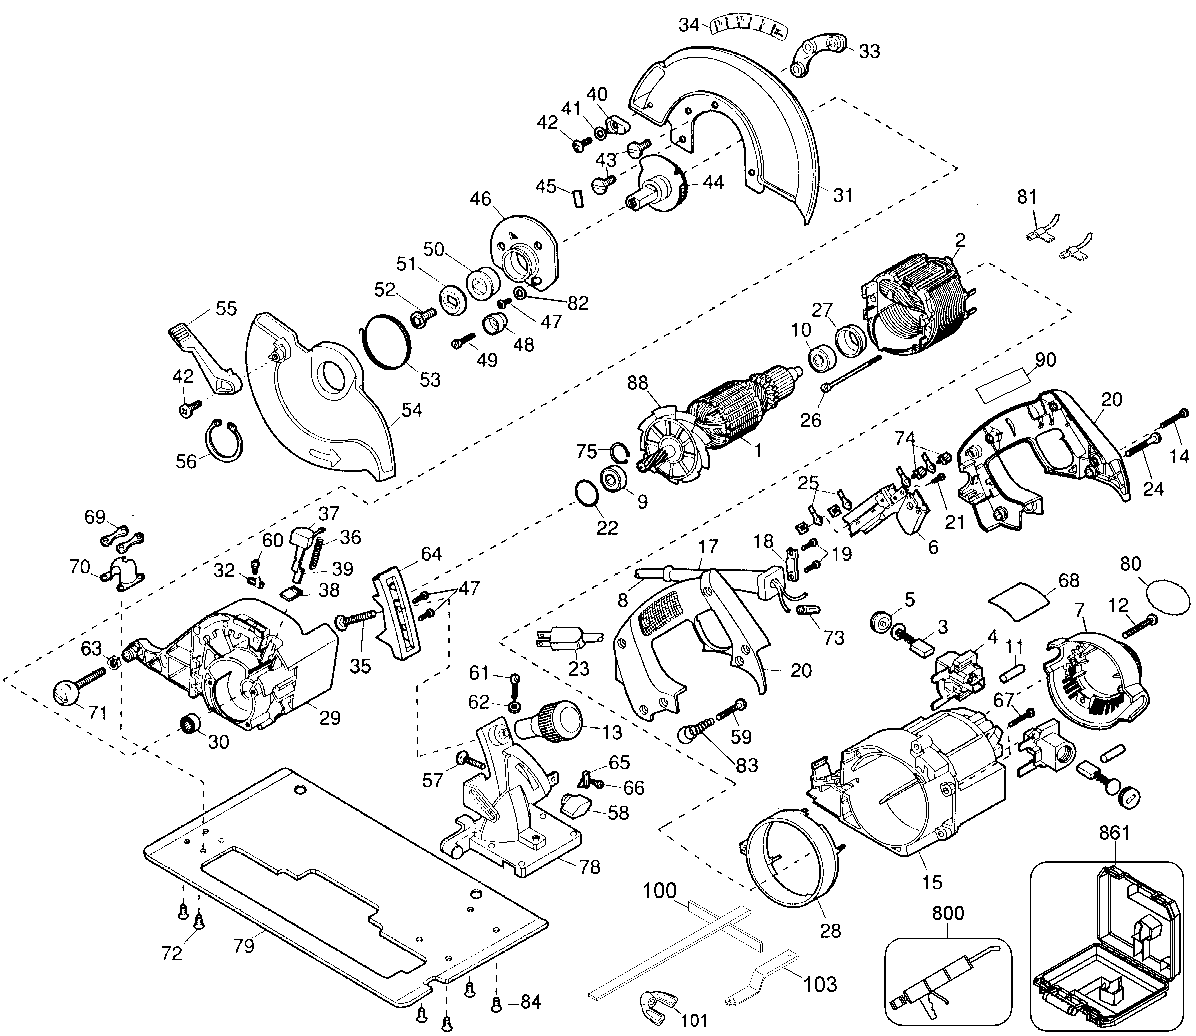 DW364 - Circular Saw Parts schematic